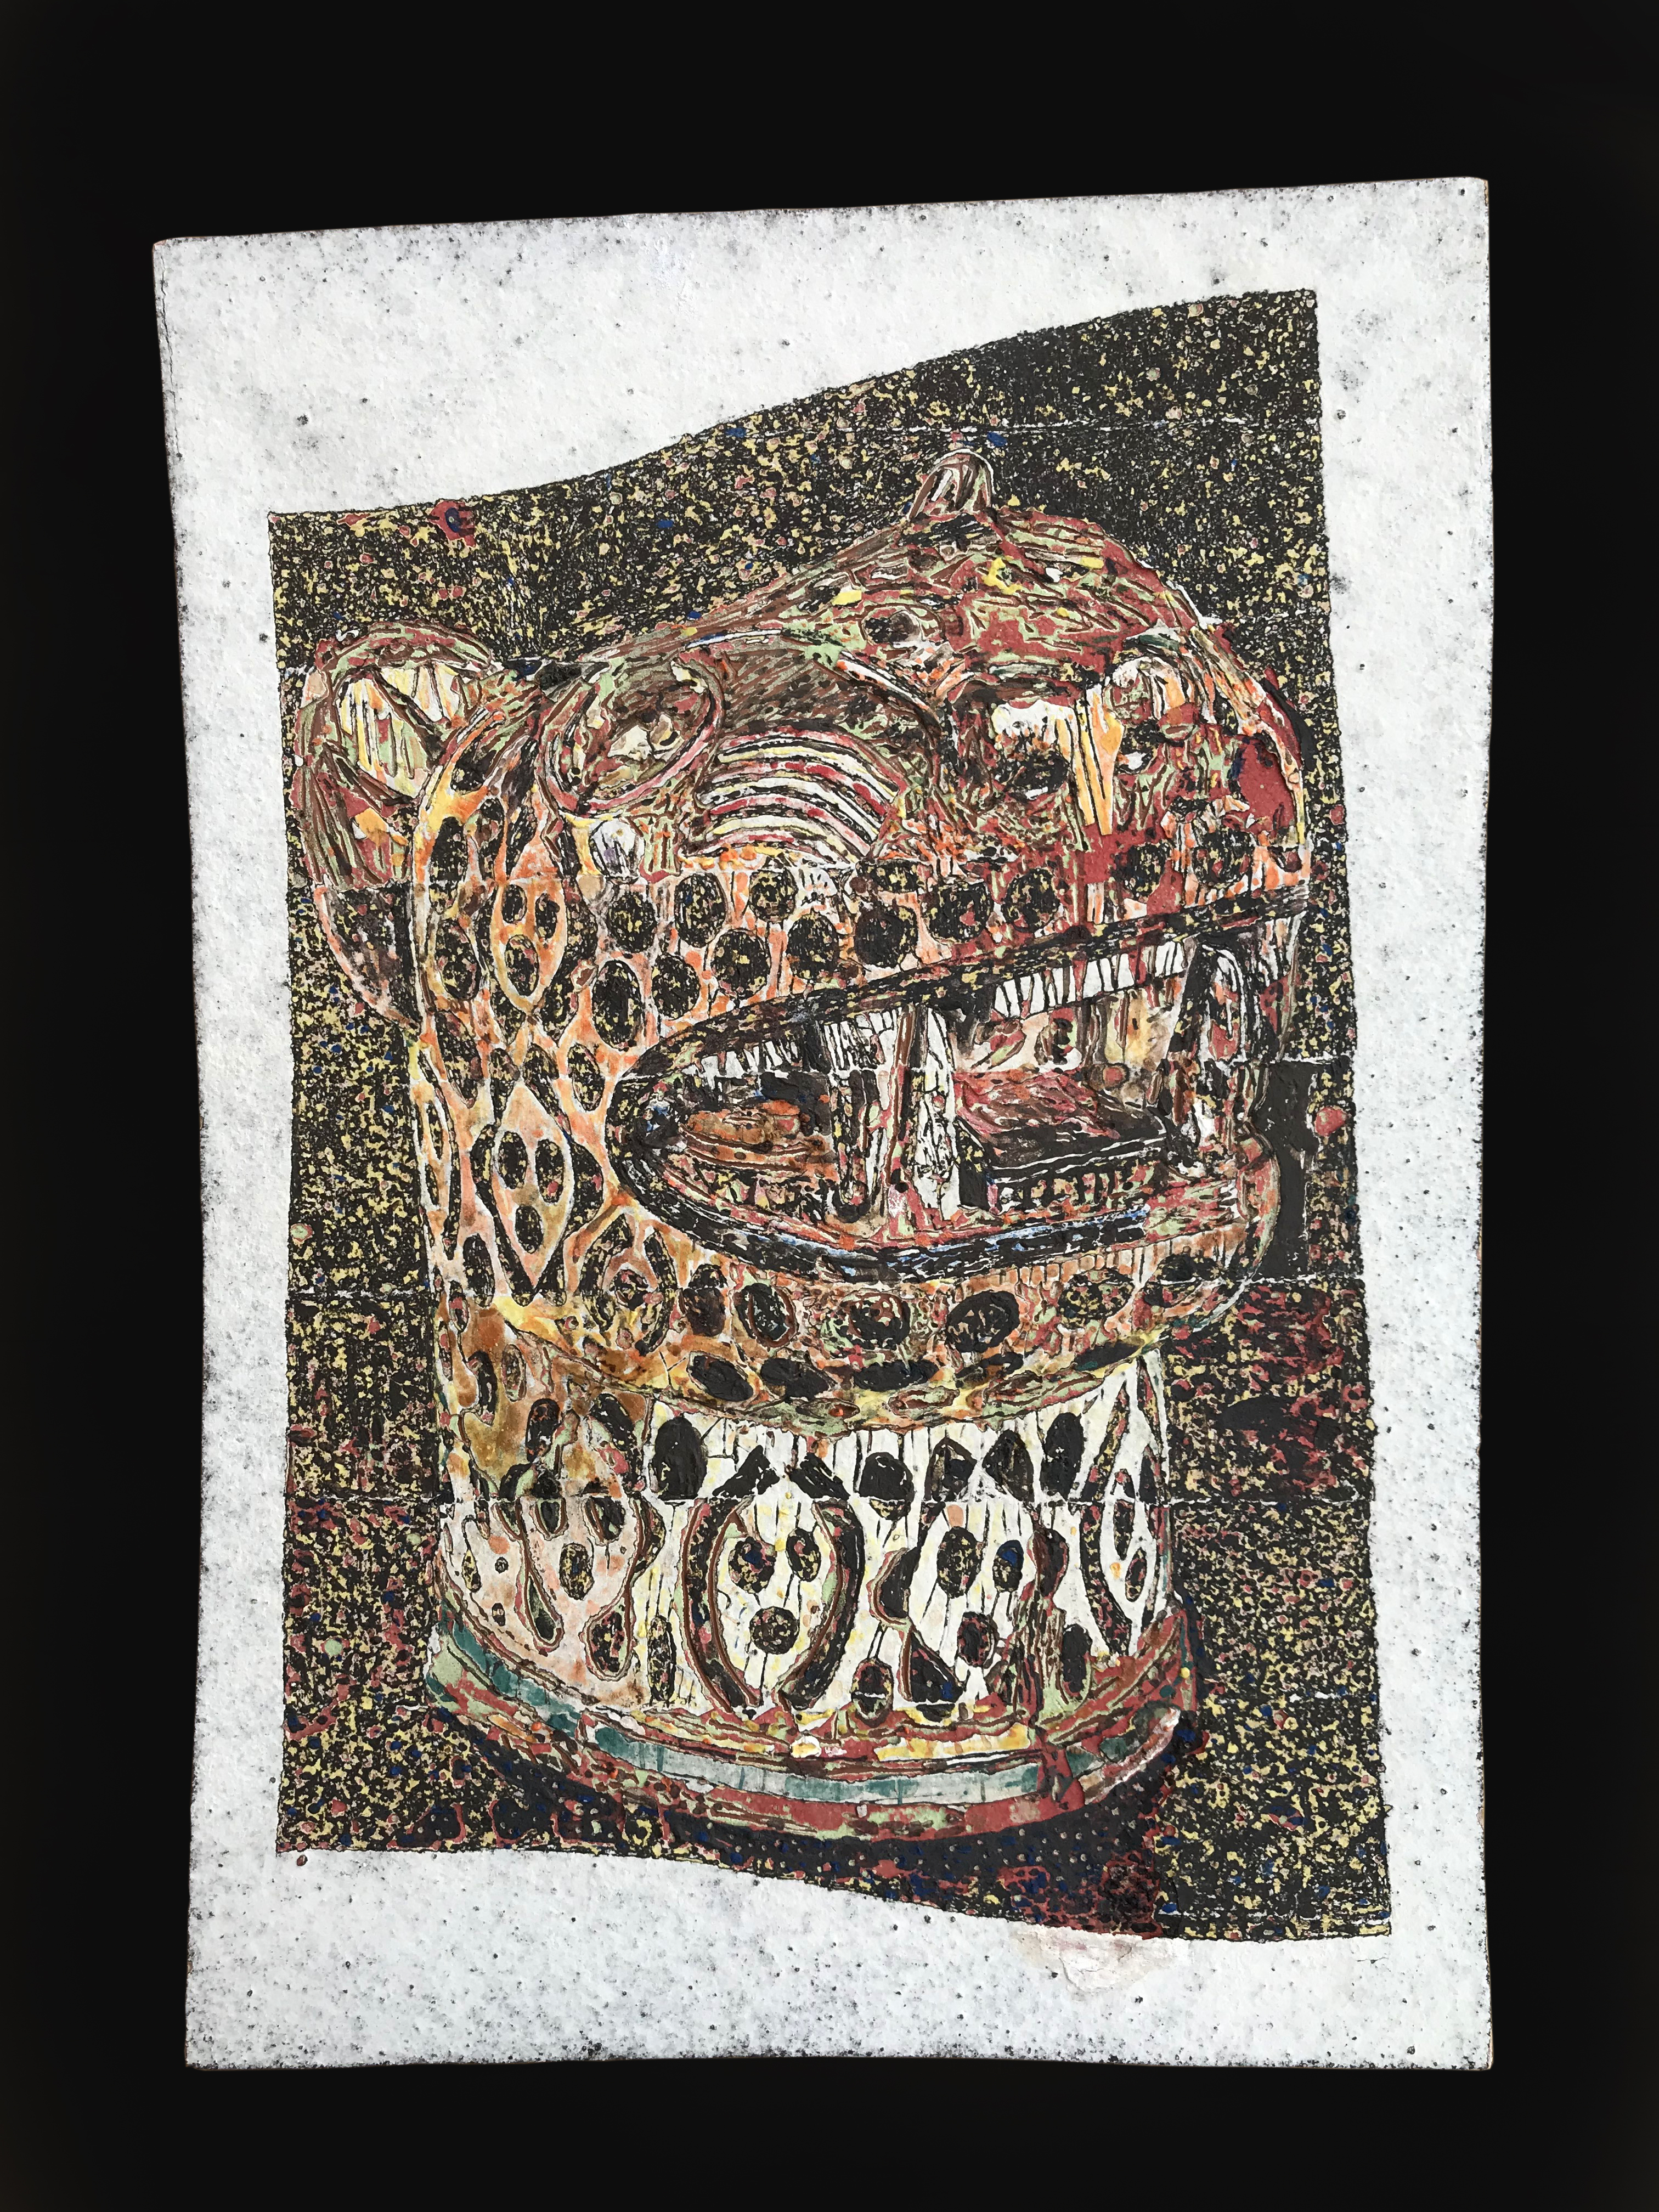 Pulque Pachilo /  layers of clay & enamels scraped off  / 29 x 20 cm